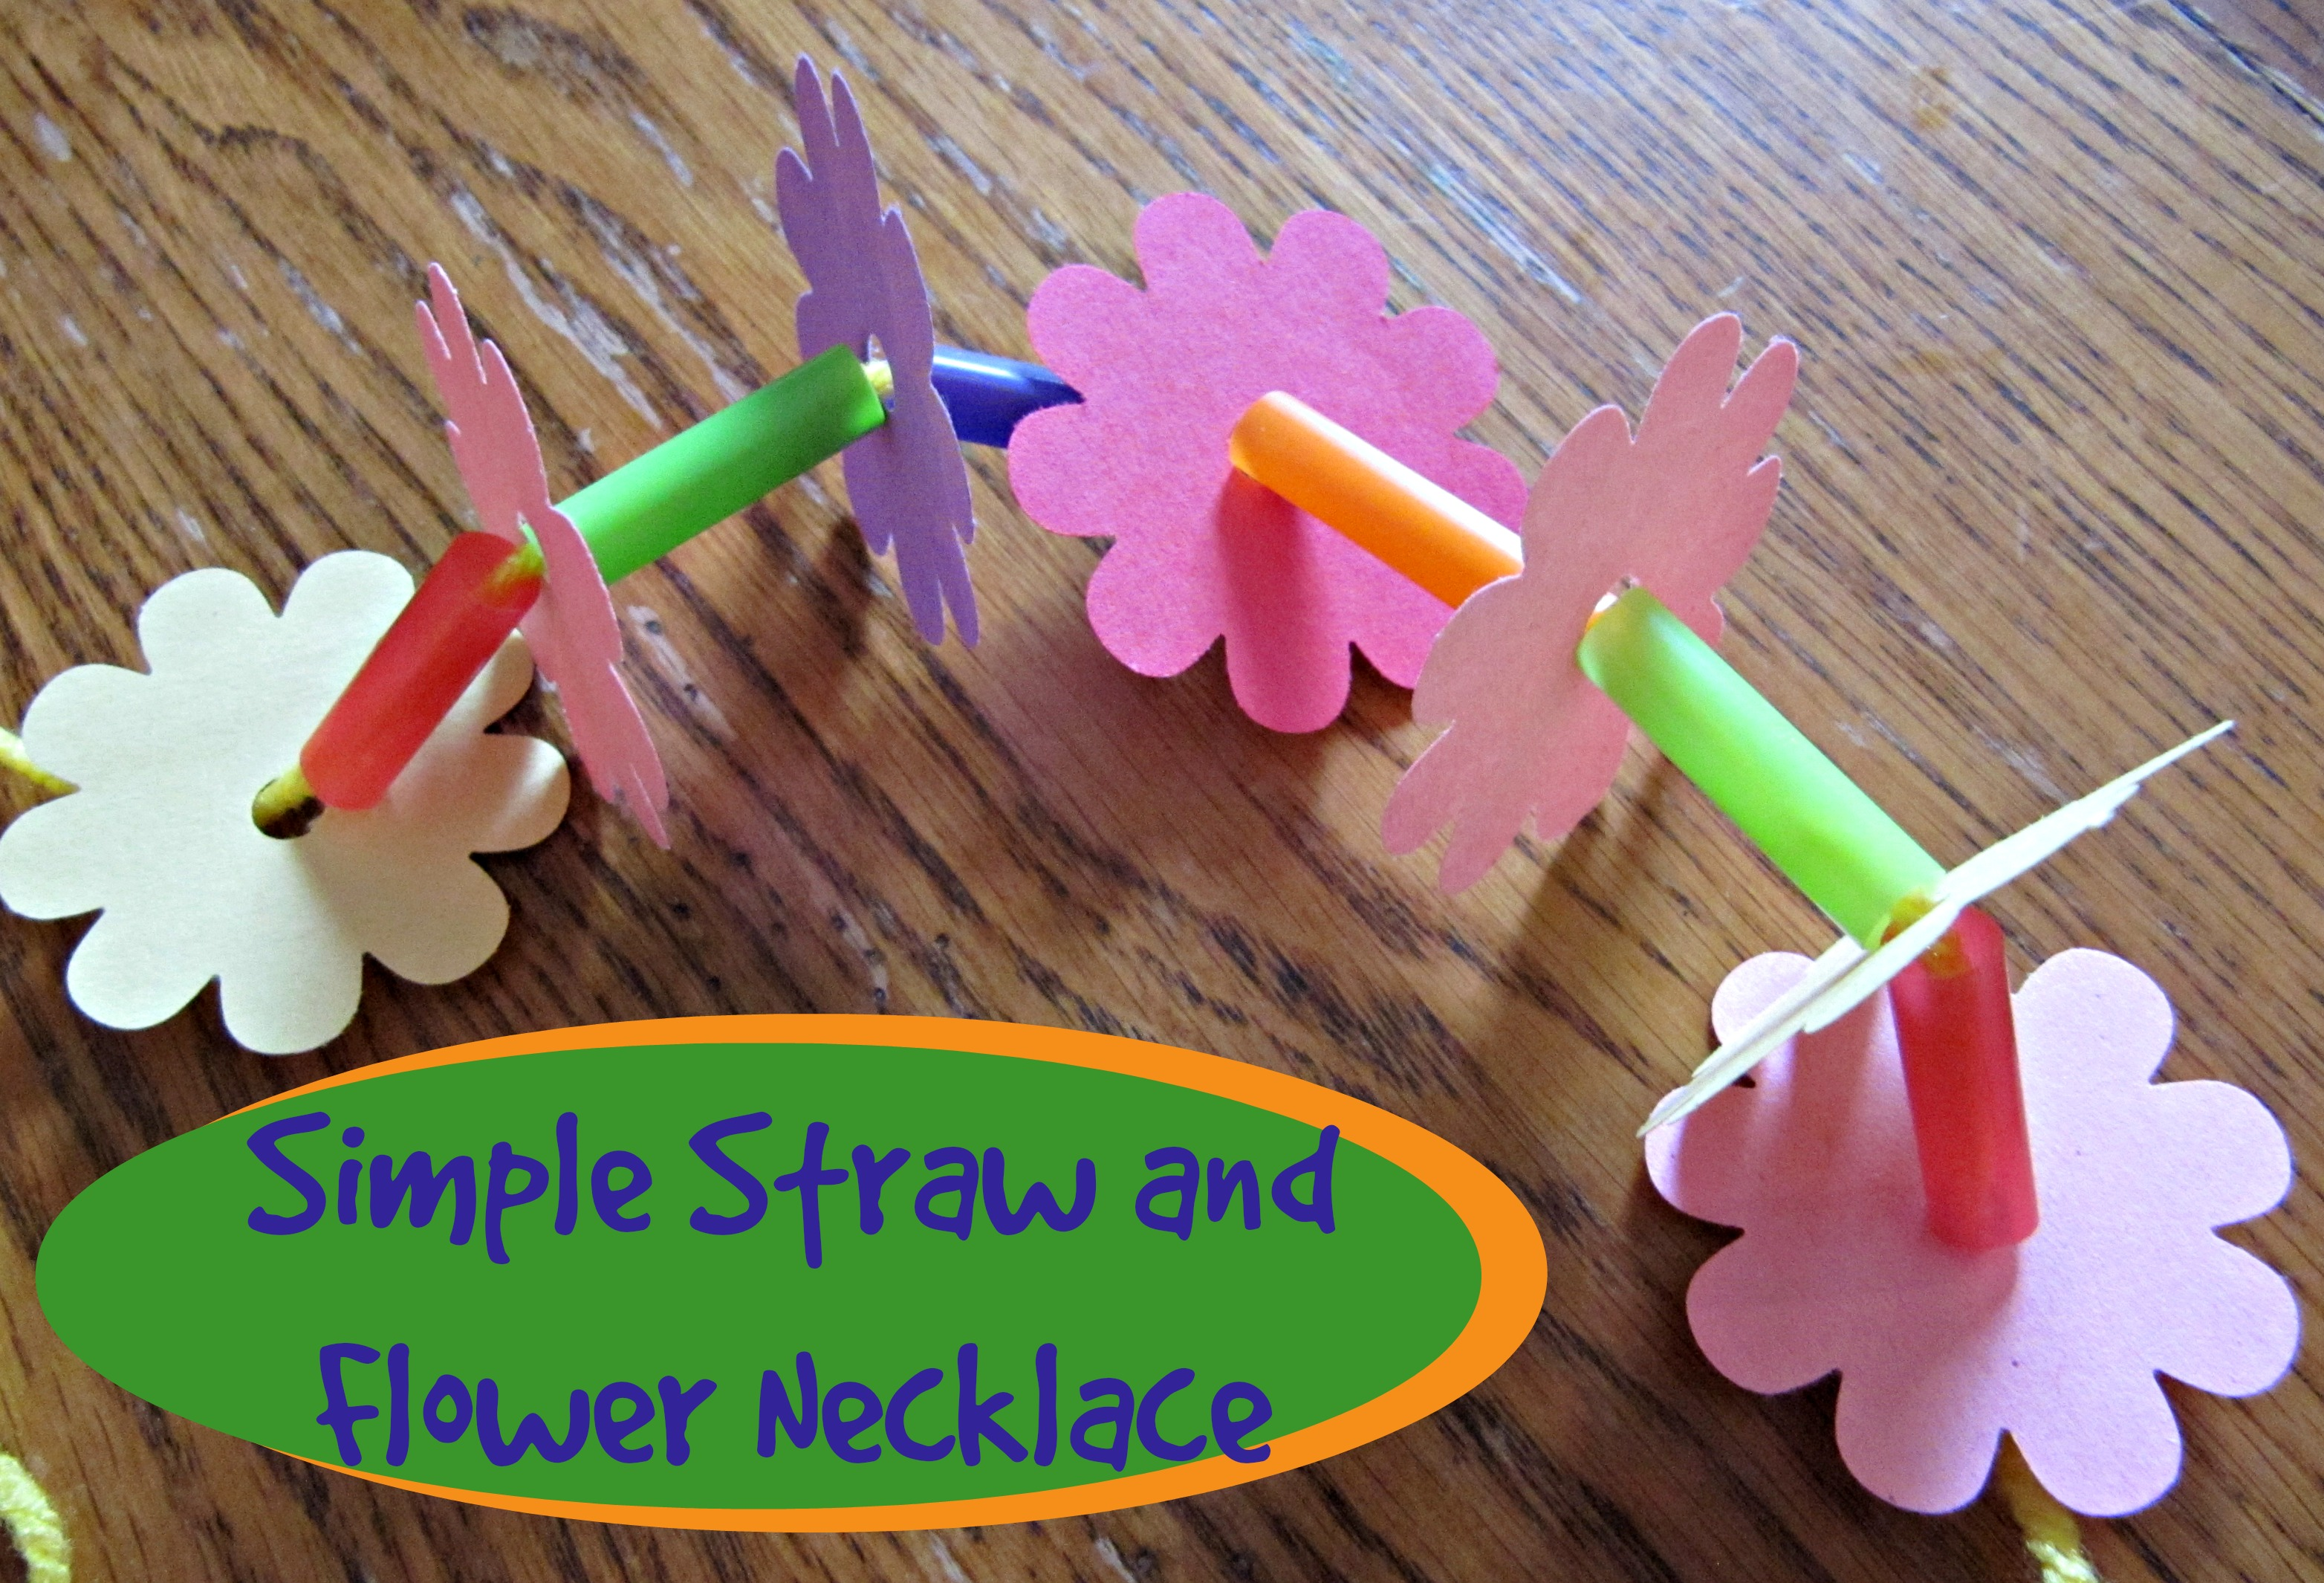 Simple straw and flower necklace instructions izmirmasajfo